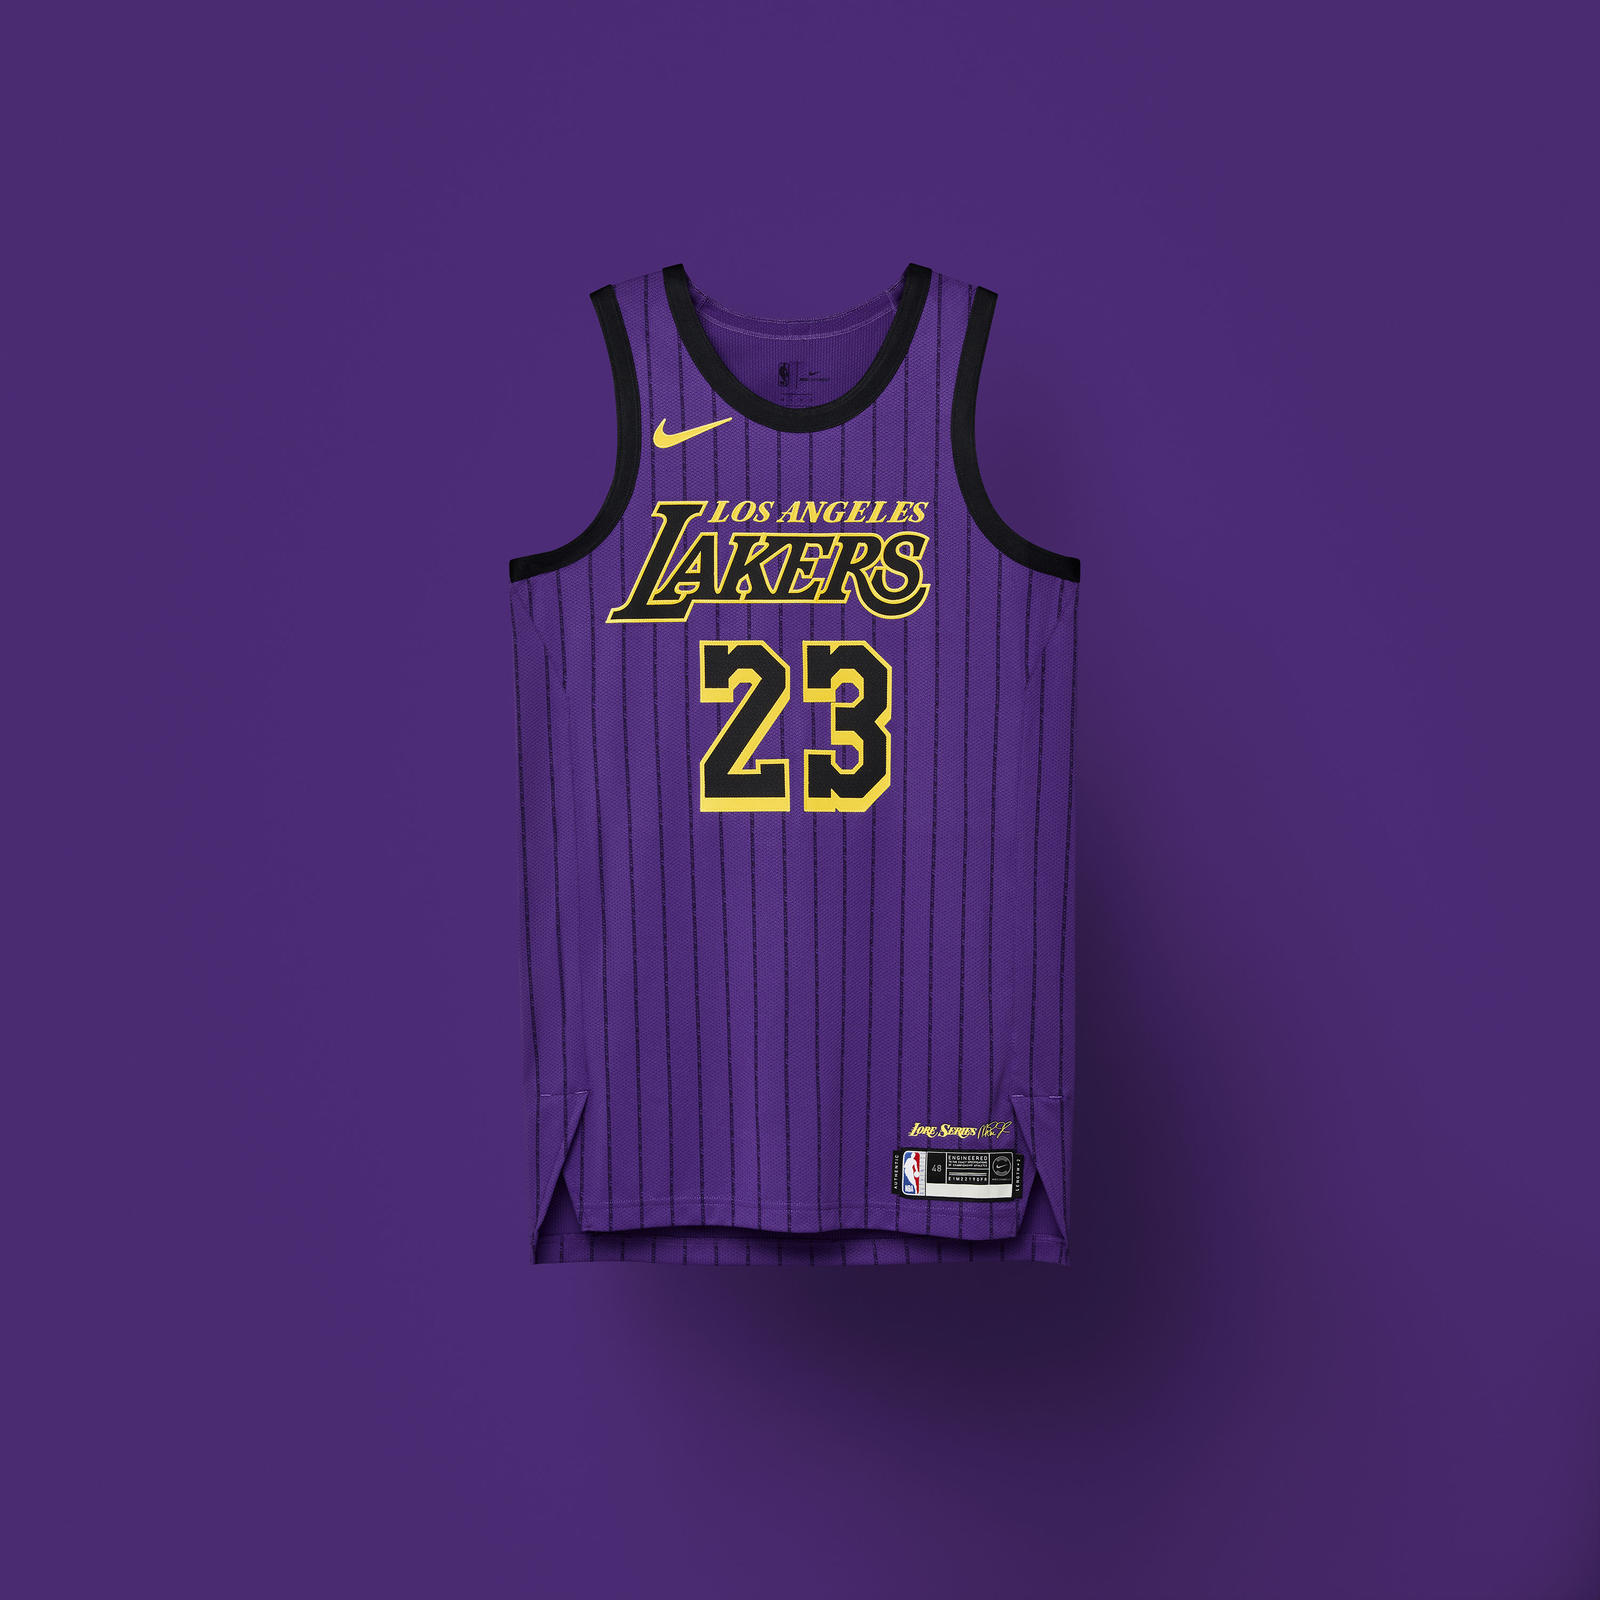 lakers jersey violet new design a24cd1